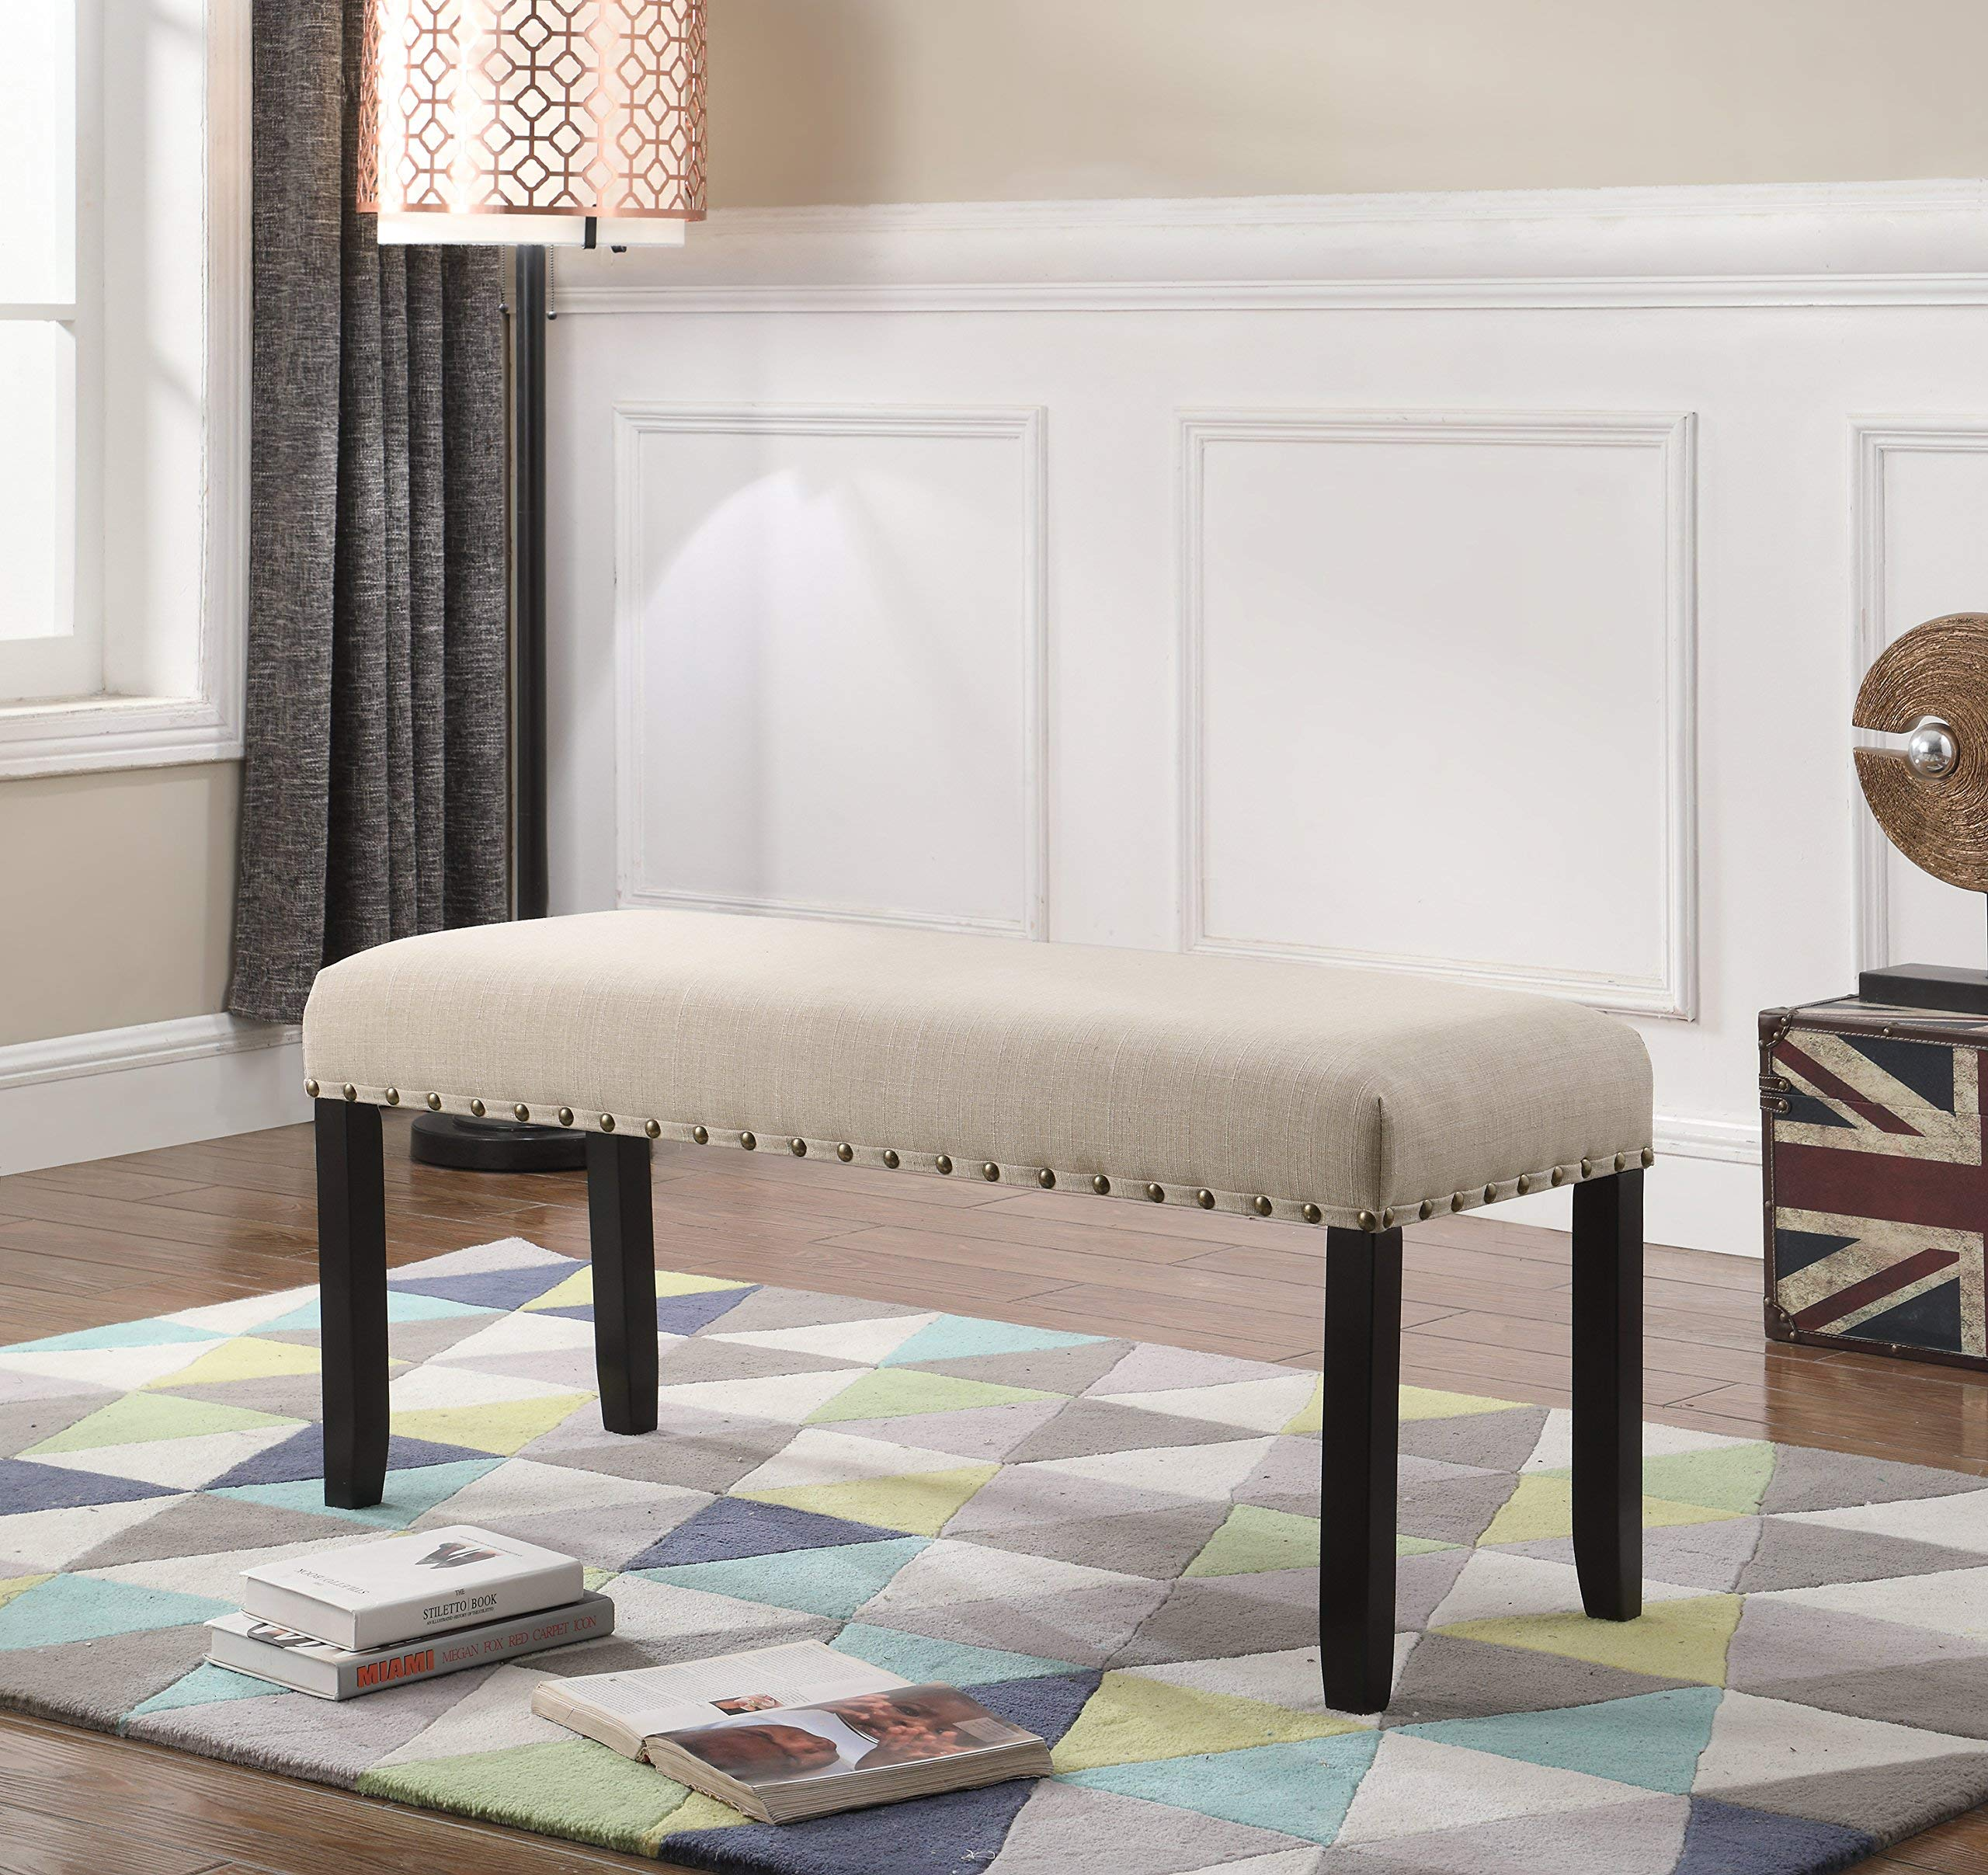 Roundhill Furniture Biony Fabric Dining Bench with Nailhead Trim, Tan by Roundhill Furniture